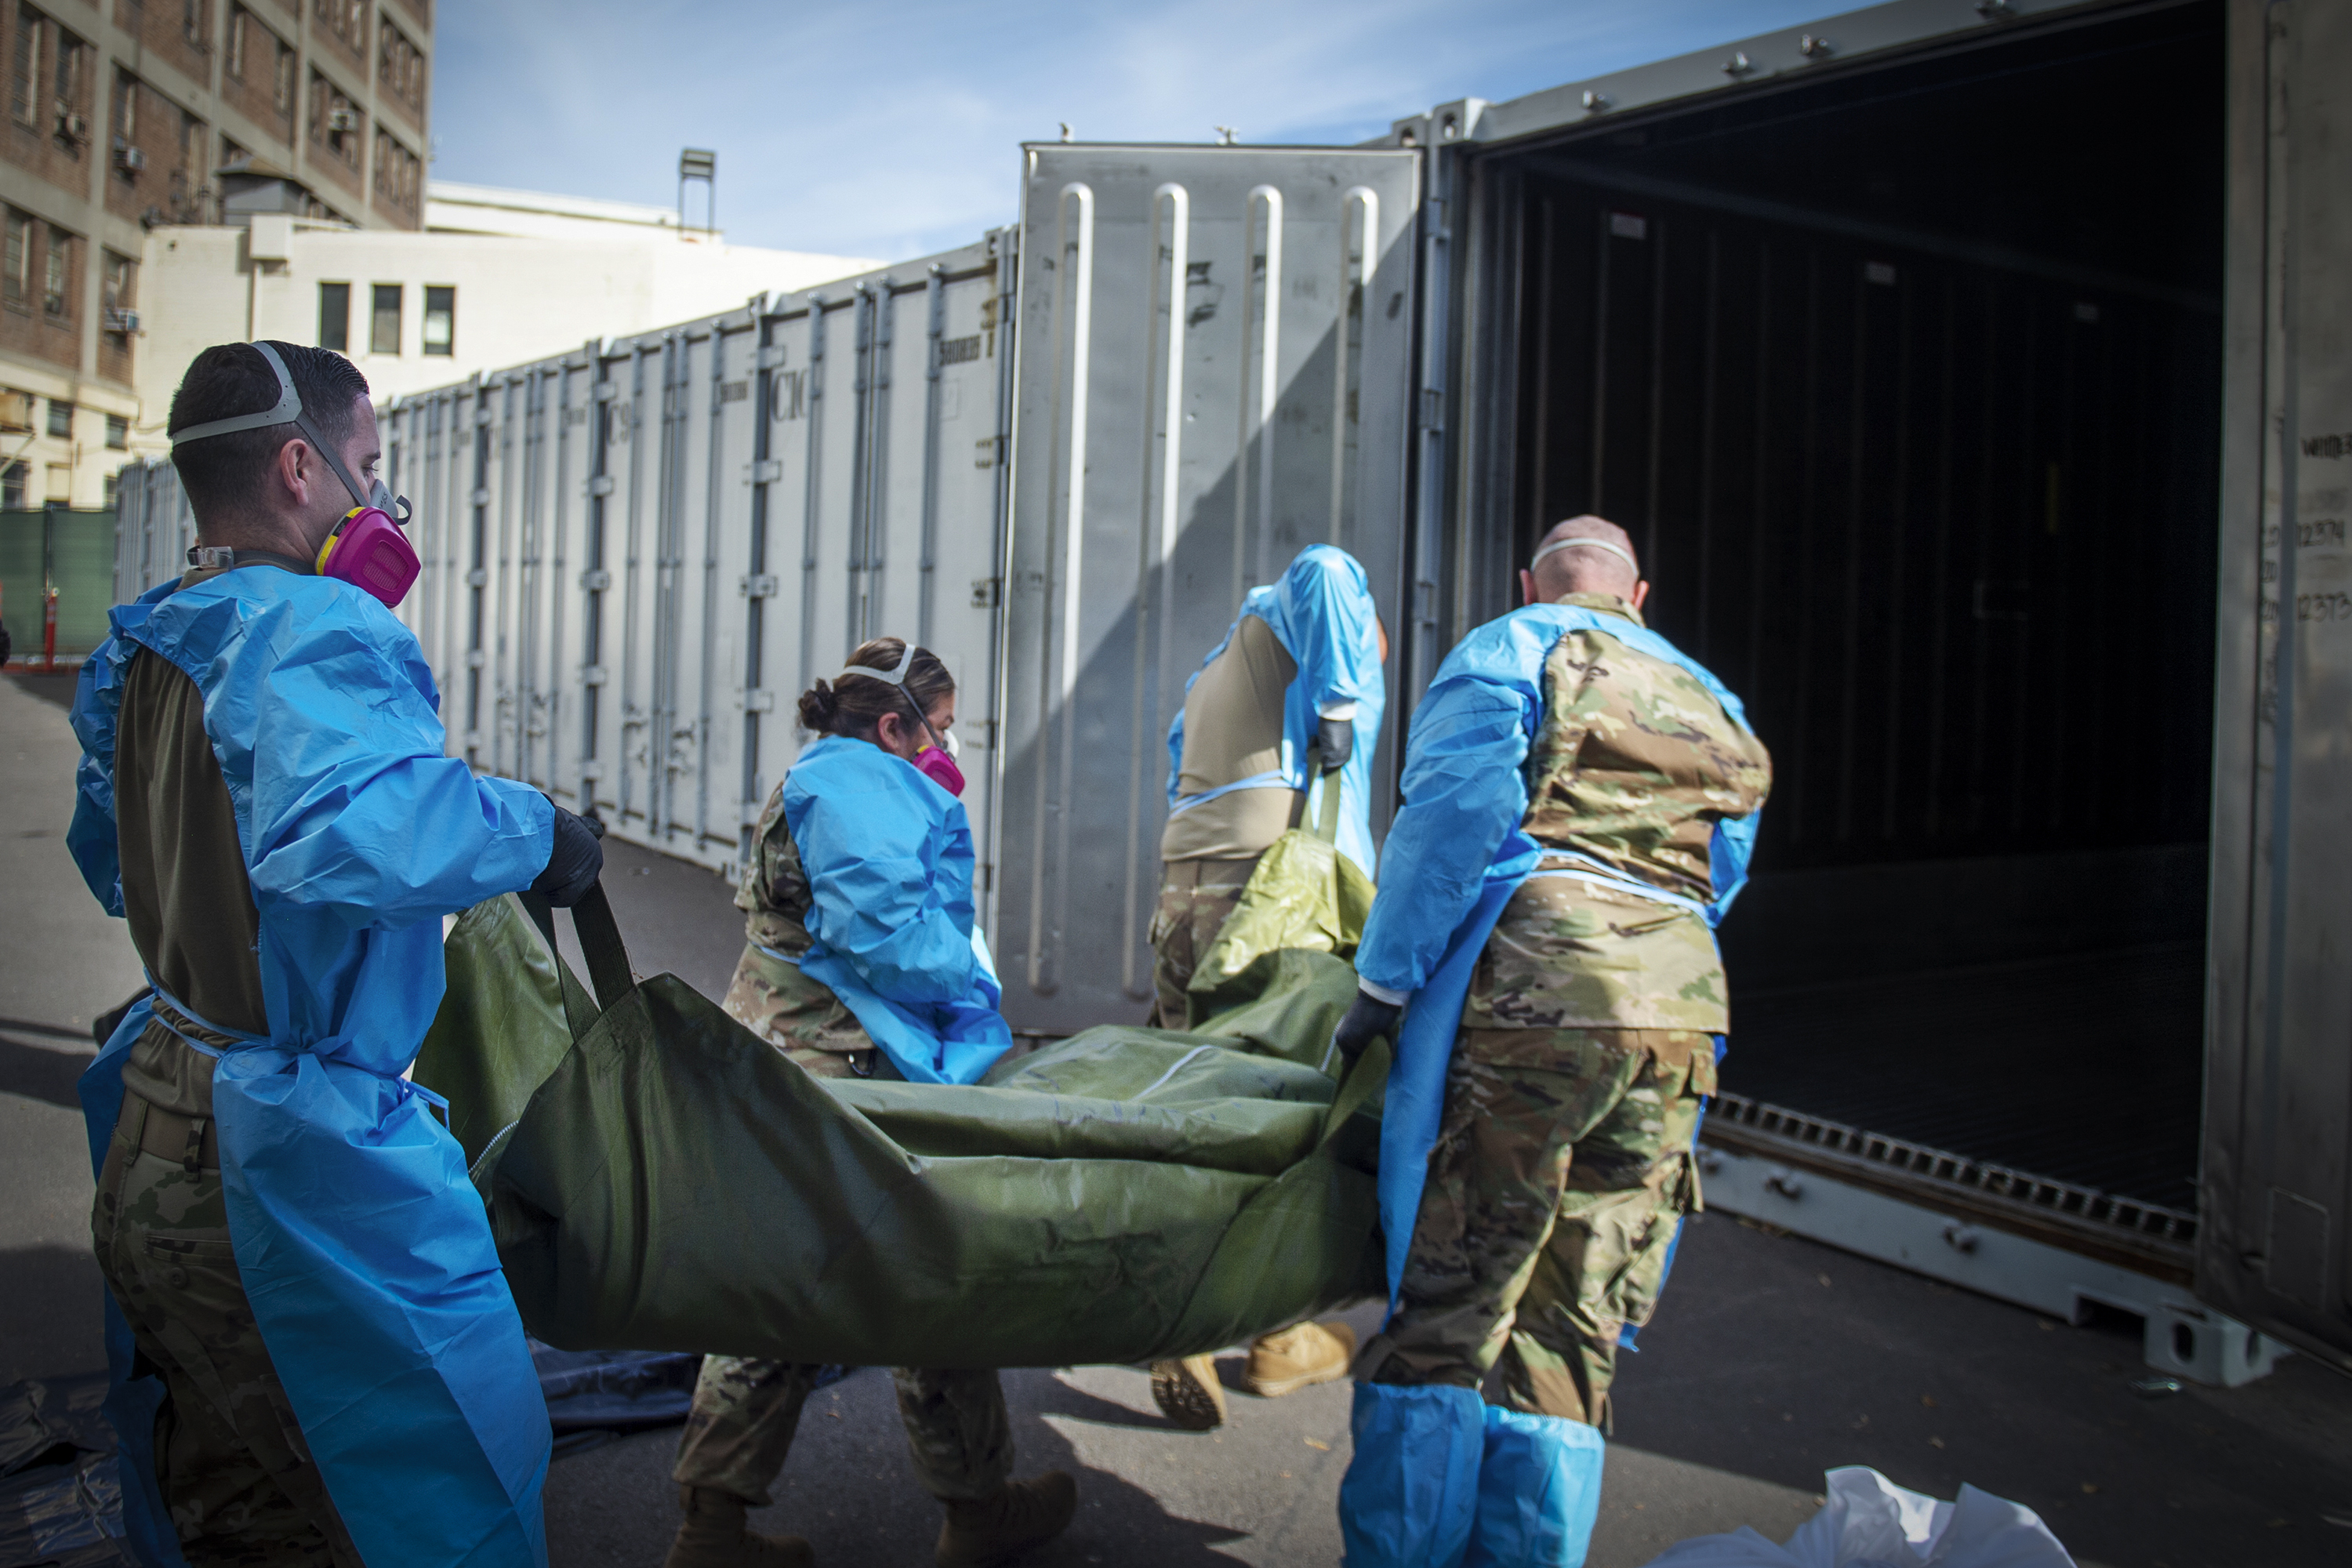 National Guard member wearing camouflage covered in hospital gowns and masks load a dead body in a bag into an outdoor storage container.